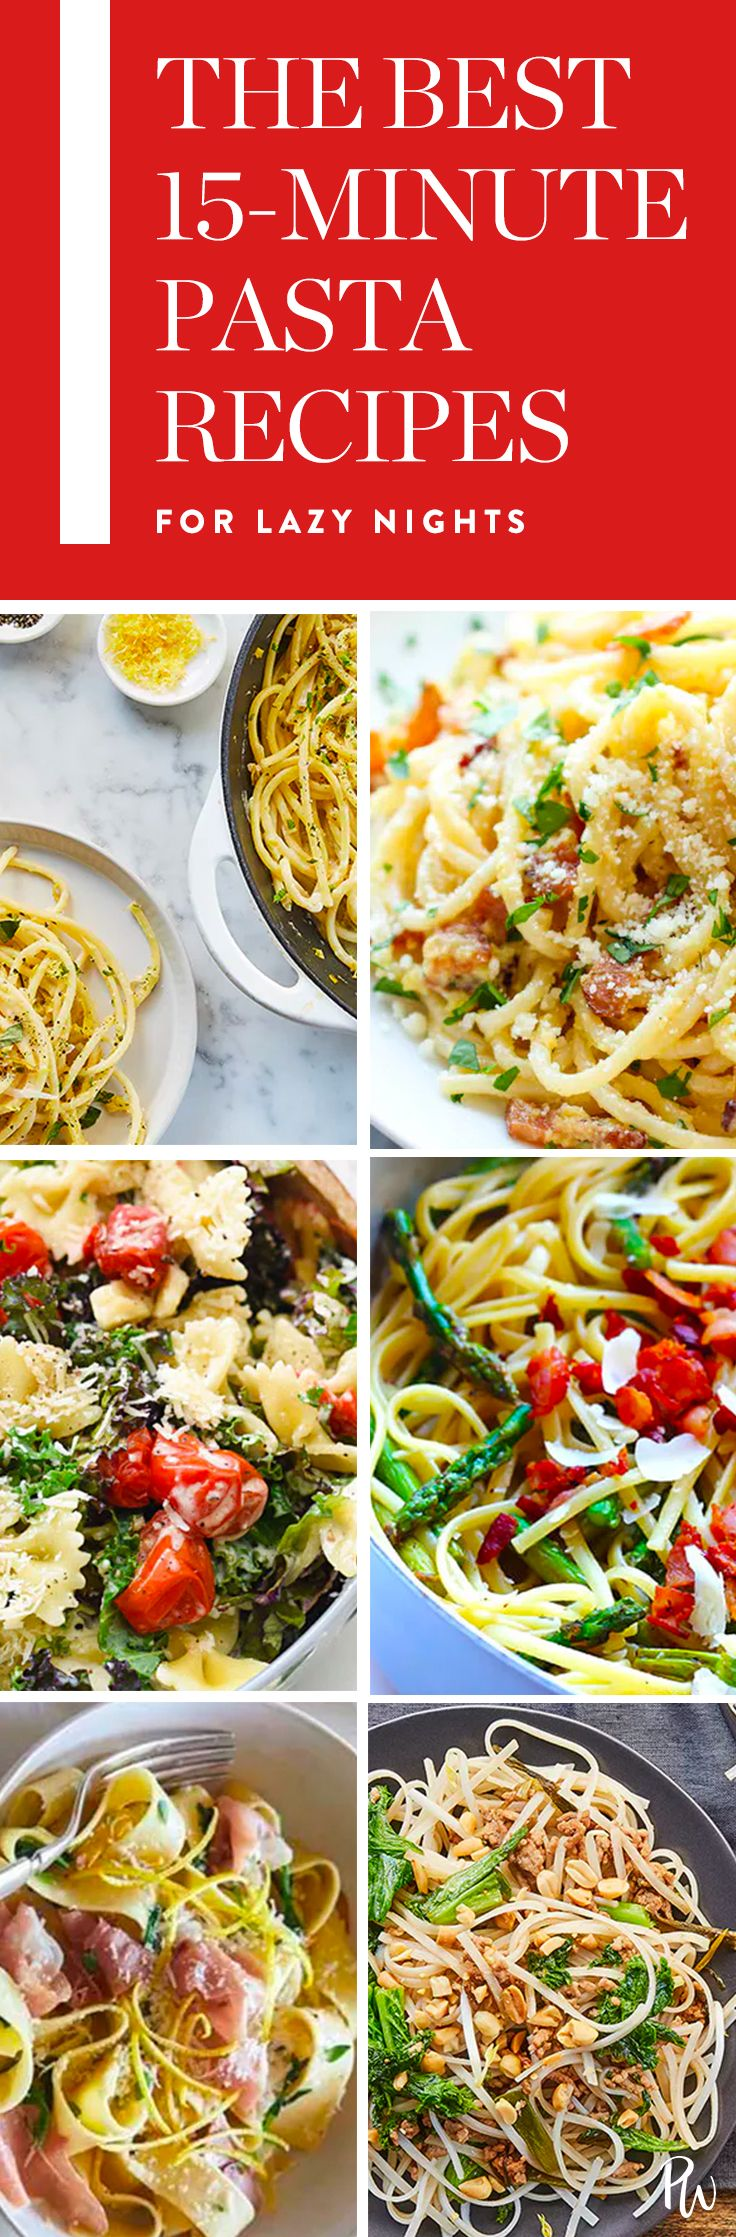 The Best 15-Minute Pasta Recipes for When You're Feeling Really Lazy via @PureWow via @PureWow